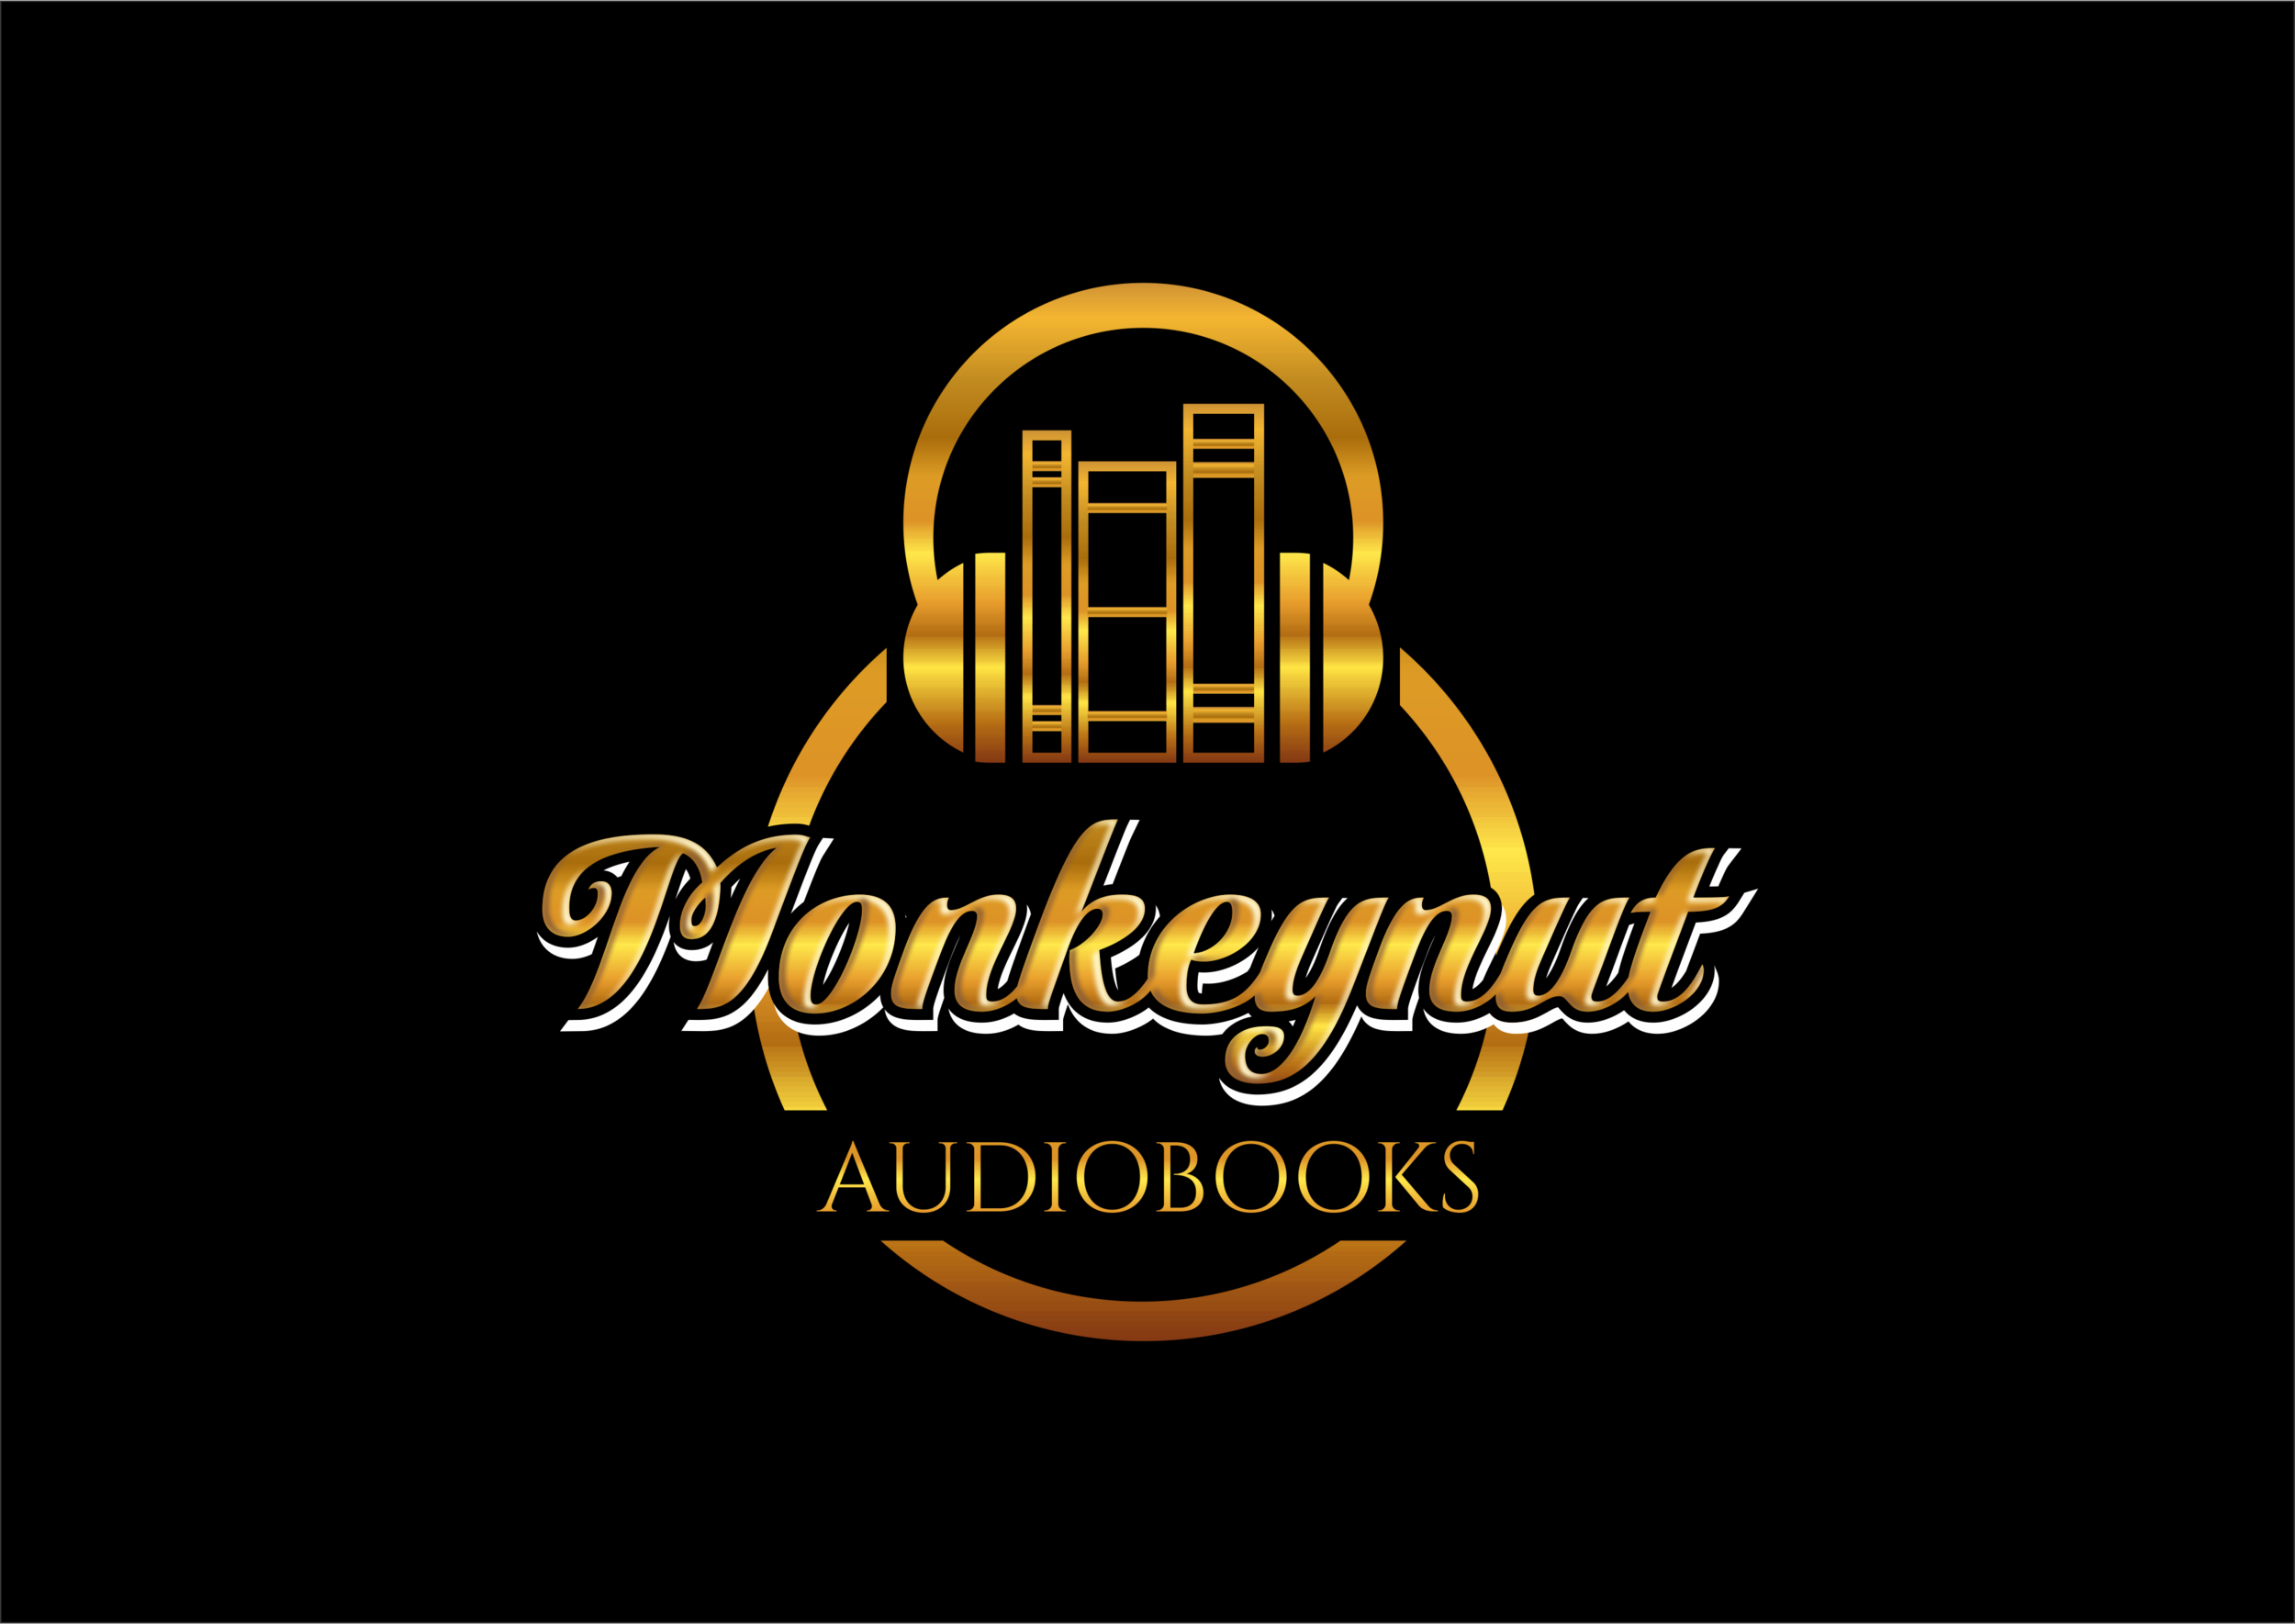 Monkeynut Audiobooks – Create A Professional Audiobook With The Ultimate Audio Experts. Monkeynut Audiobooks are the audiobook experts supplying publishers and authors industry standard audiobook audio.